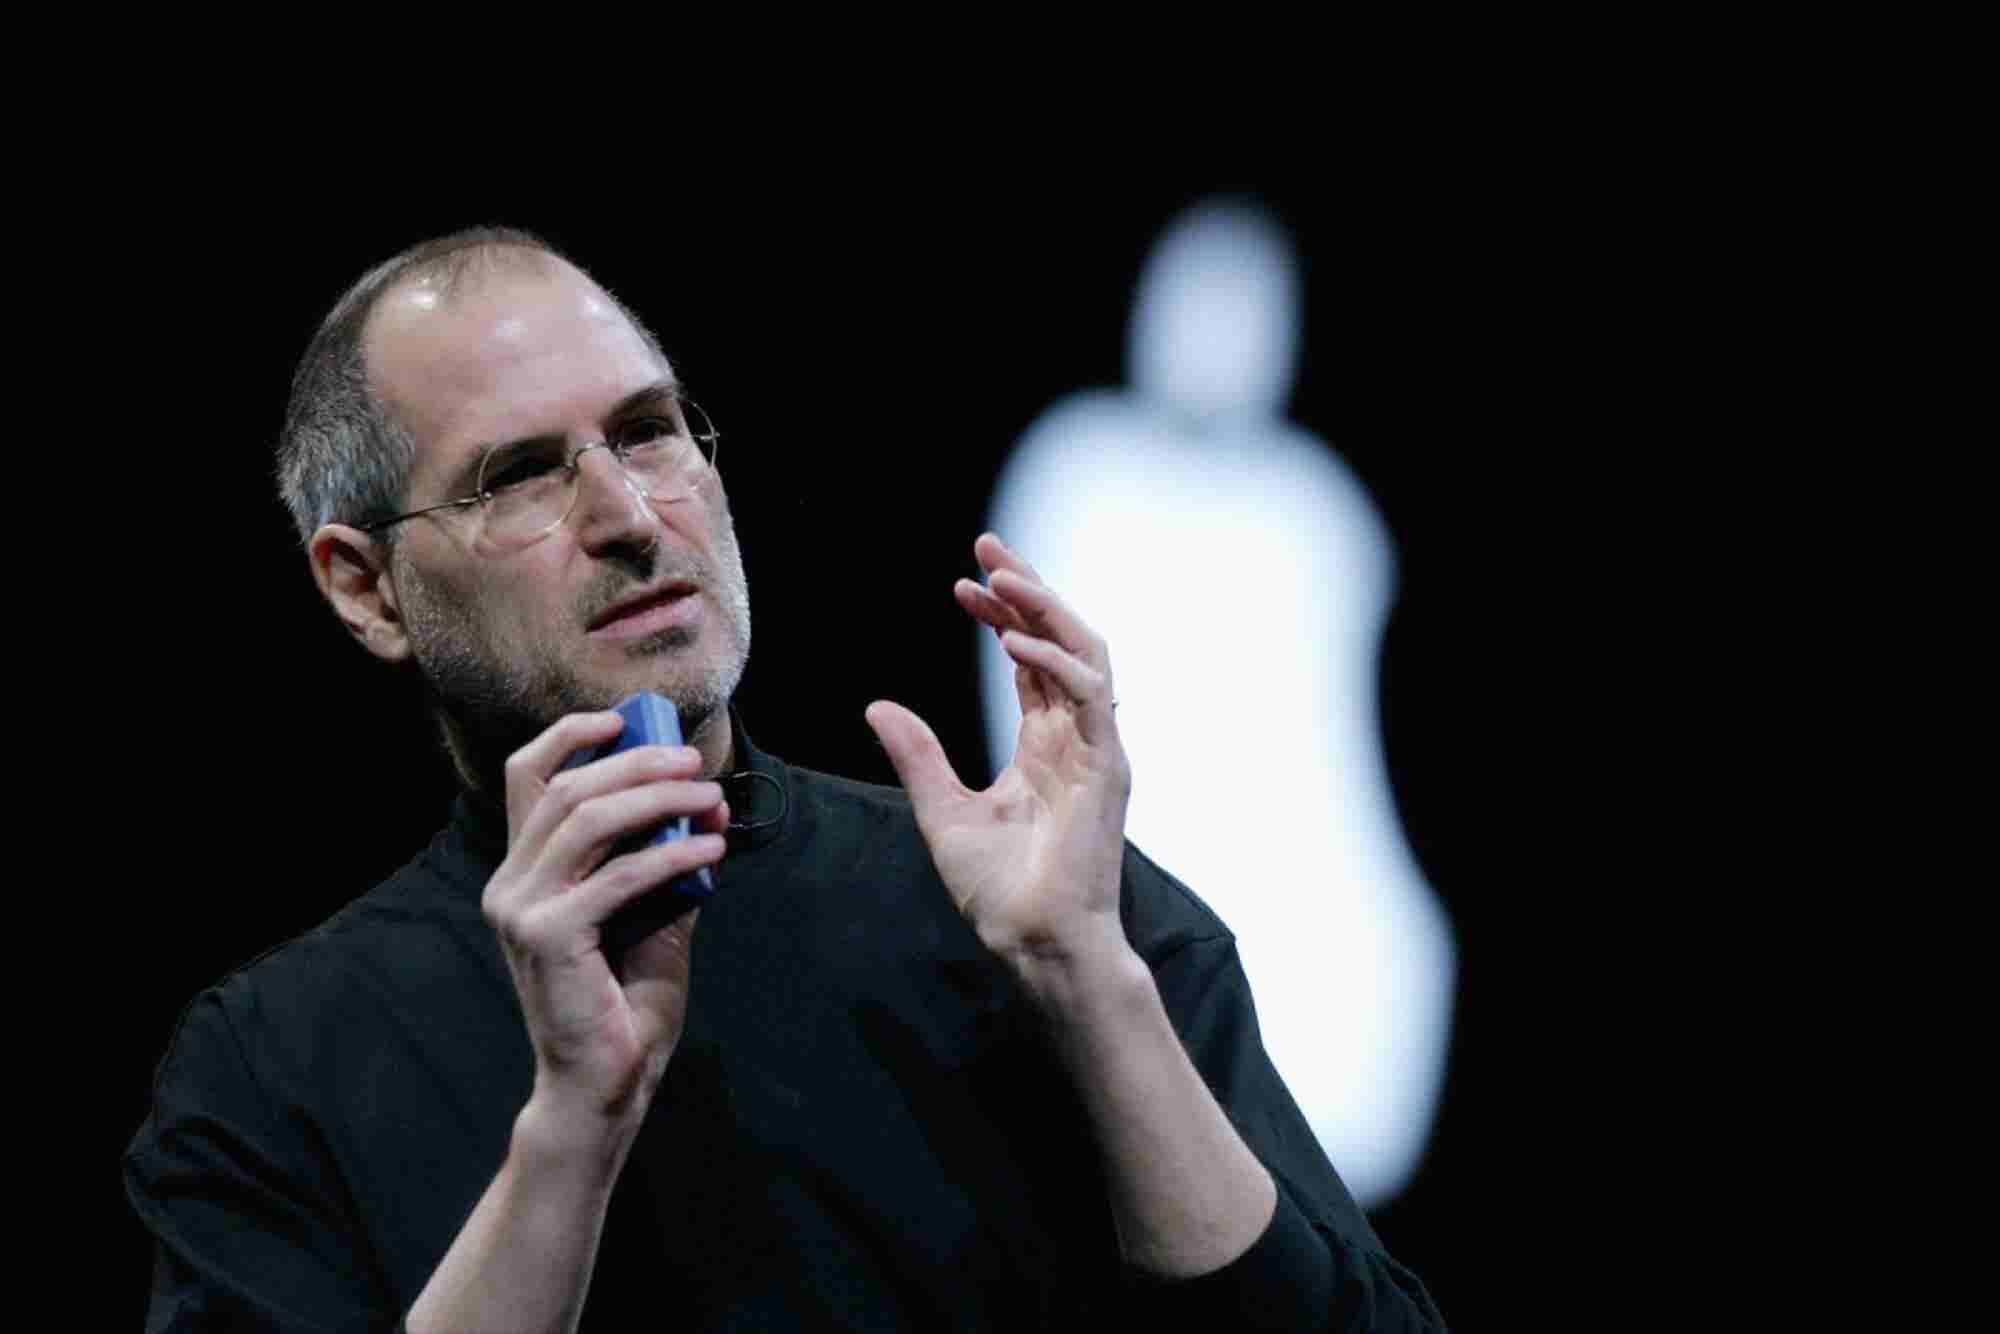 Steve Jobs Was an Arrogant You-Know-What. Jeff Bezos and Larry Ellison...